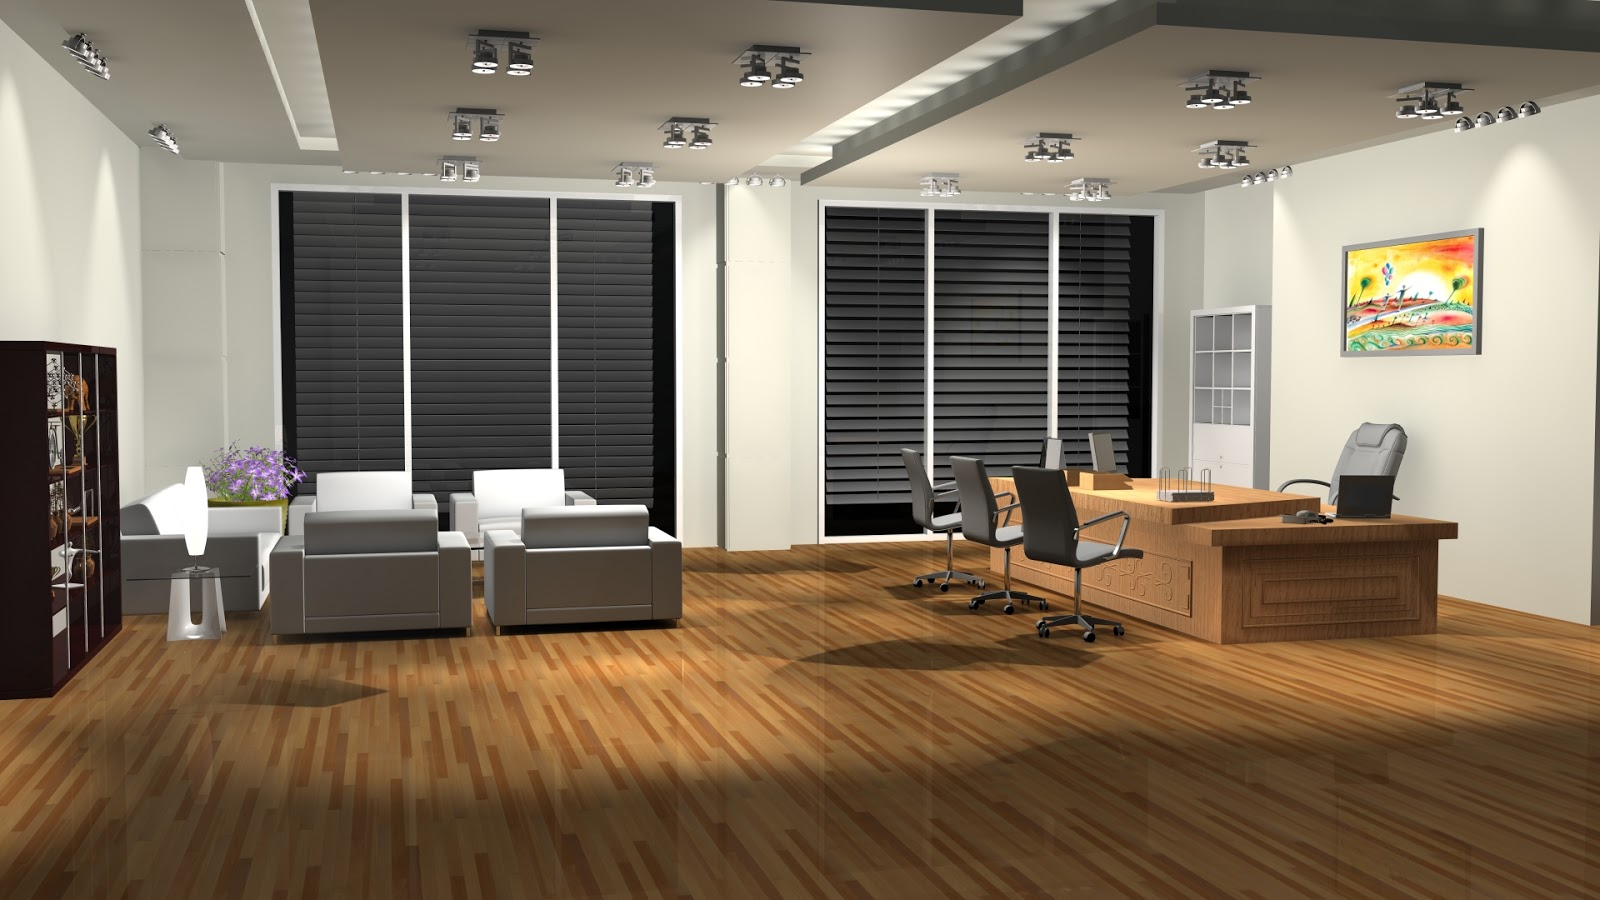 Sajid designs office room 3d interior design 3ds max for Office room interior designs